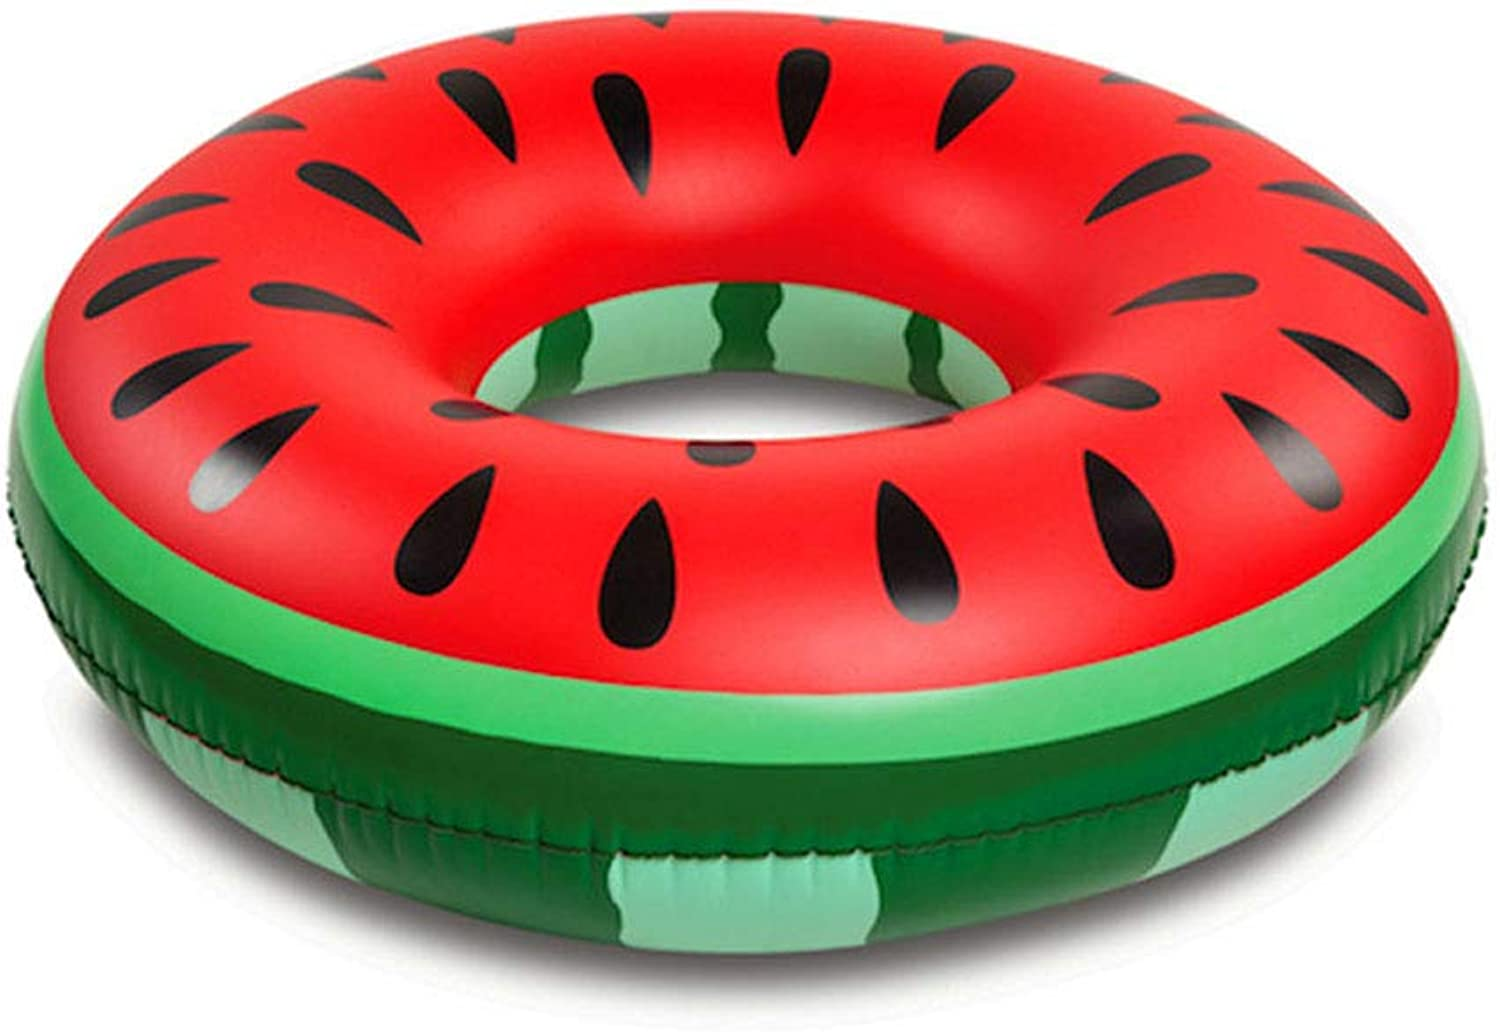 Swimming Ring Large Watermelon Swimming Ring Adult Inflatable Swimming Pool Seat Floating Row